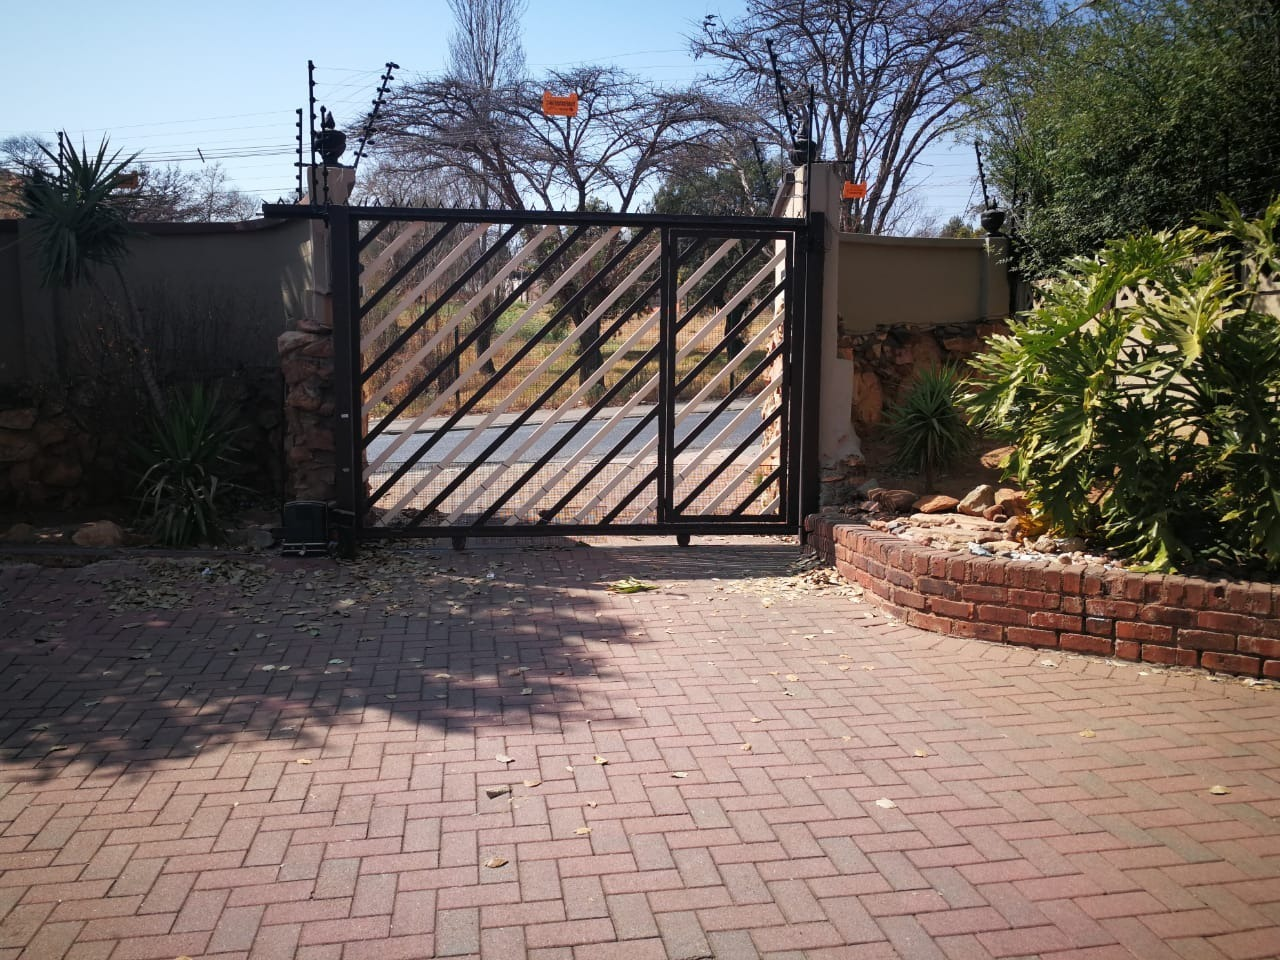 STUNNING 4 BEDROOM HOME FOR SALE IN GERMISTON!